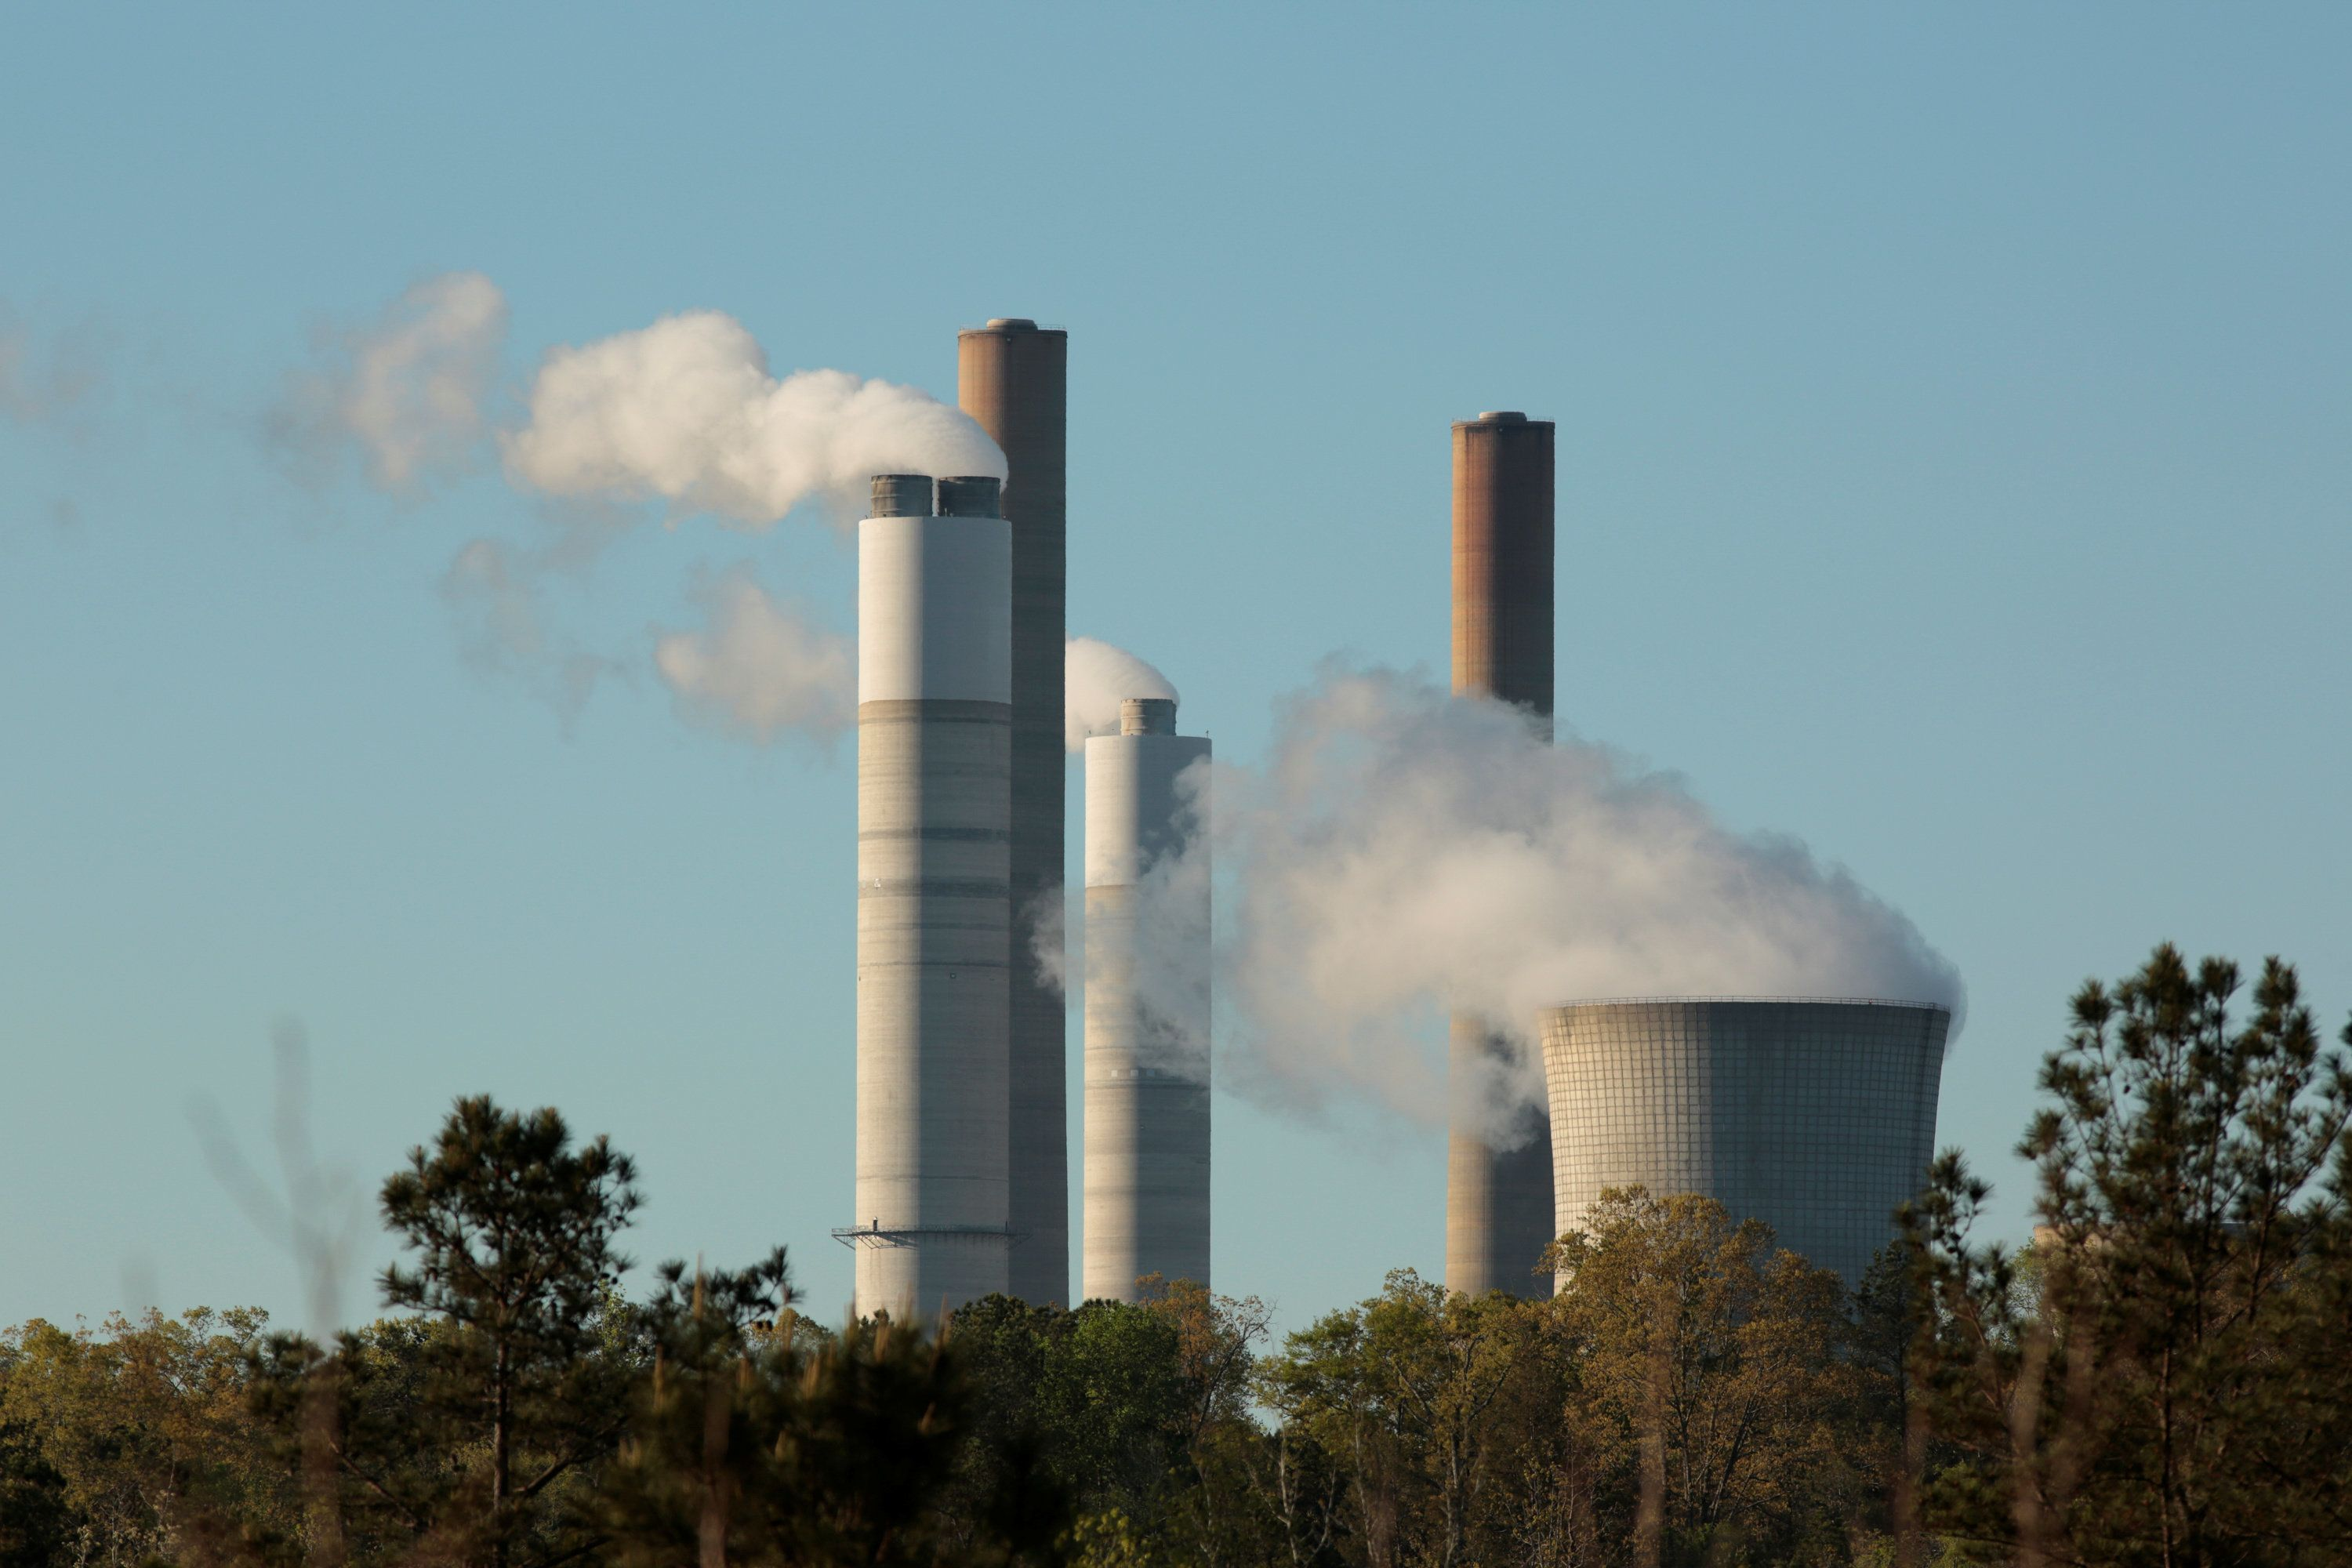 The Robert W Scherer Power Plant, a coal-fired electricity plant operated by Georgia Power, a subsidiary of the Southern Comp